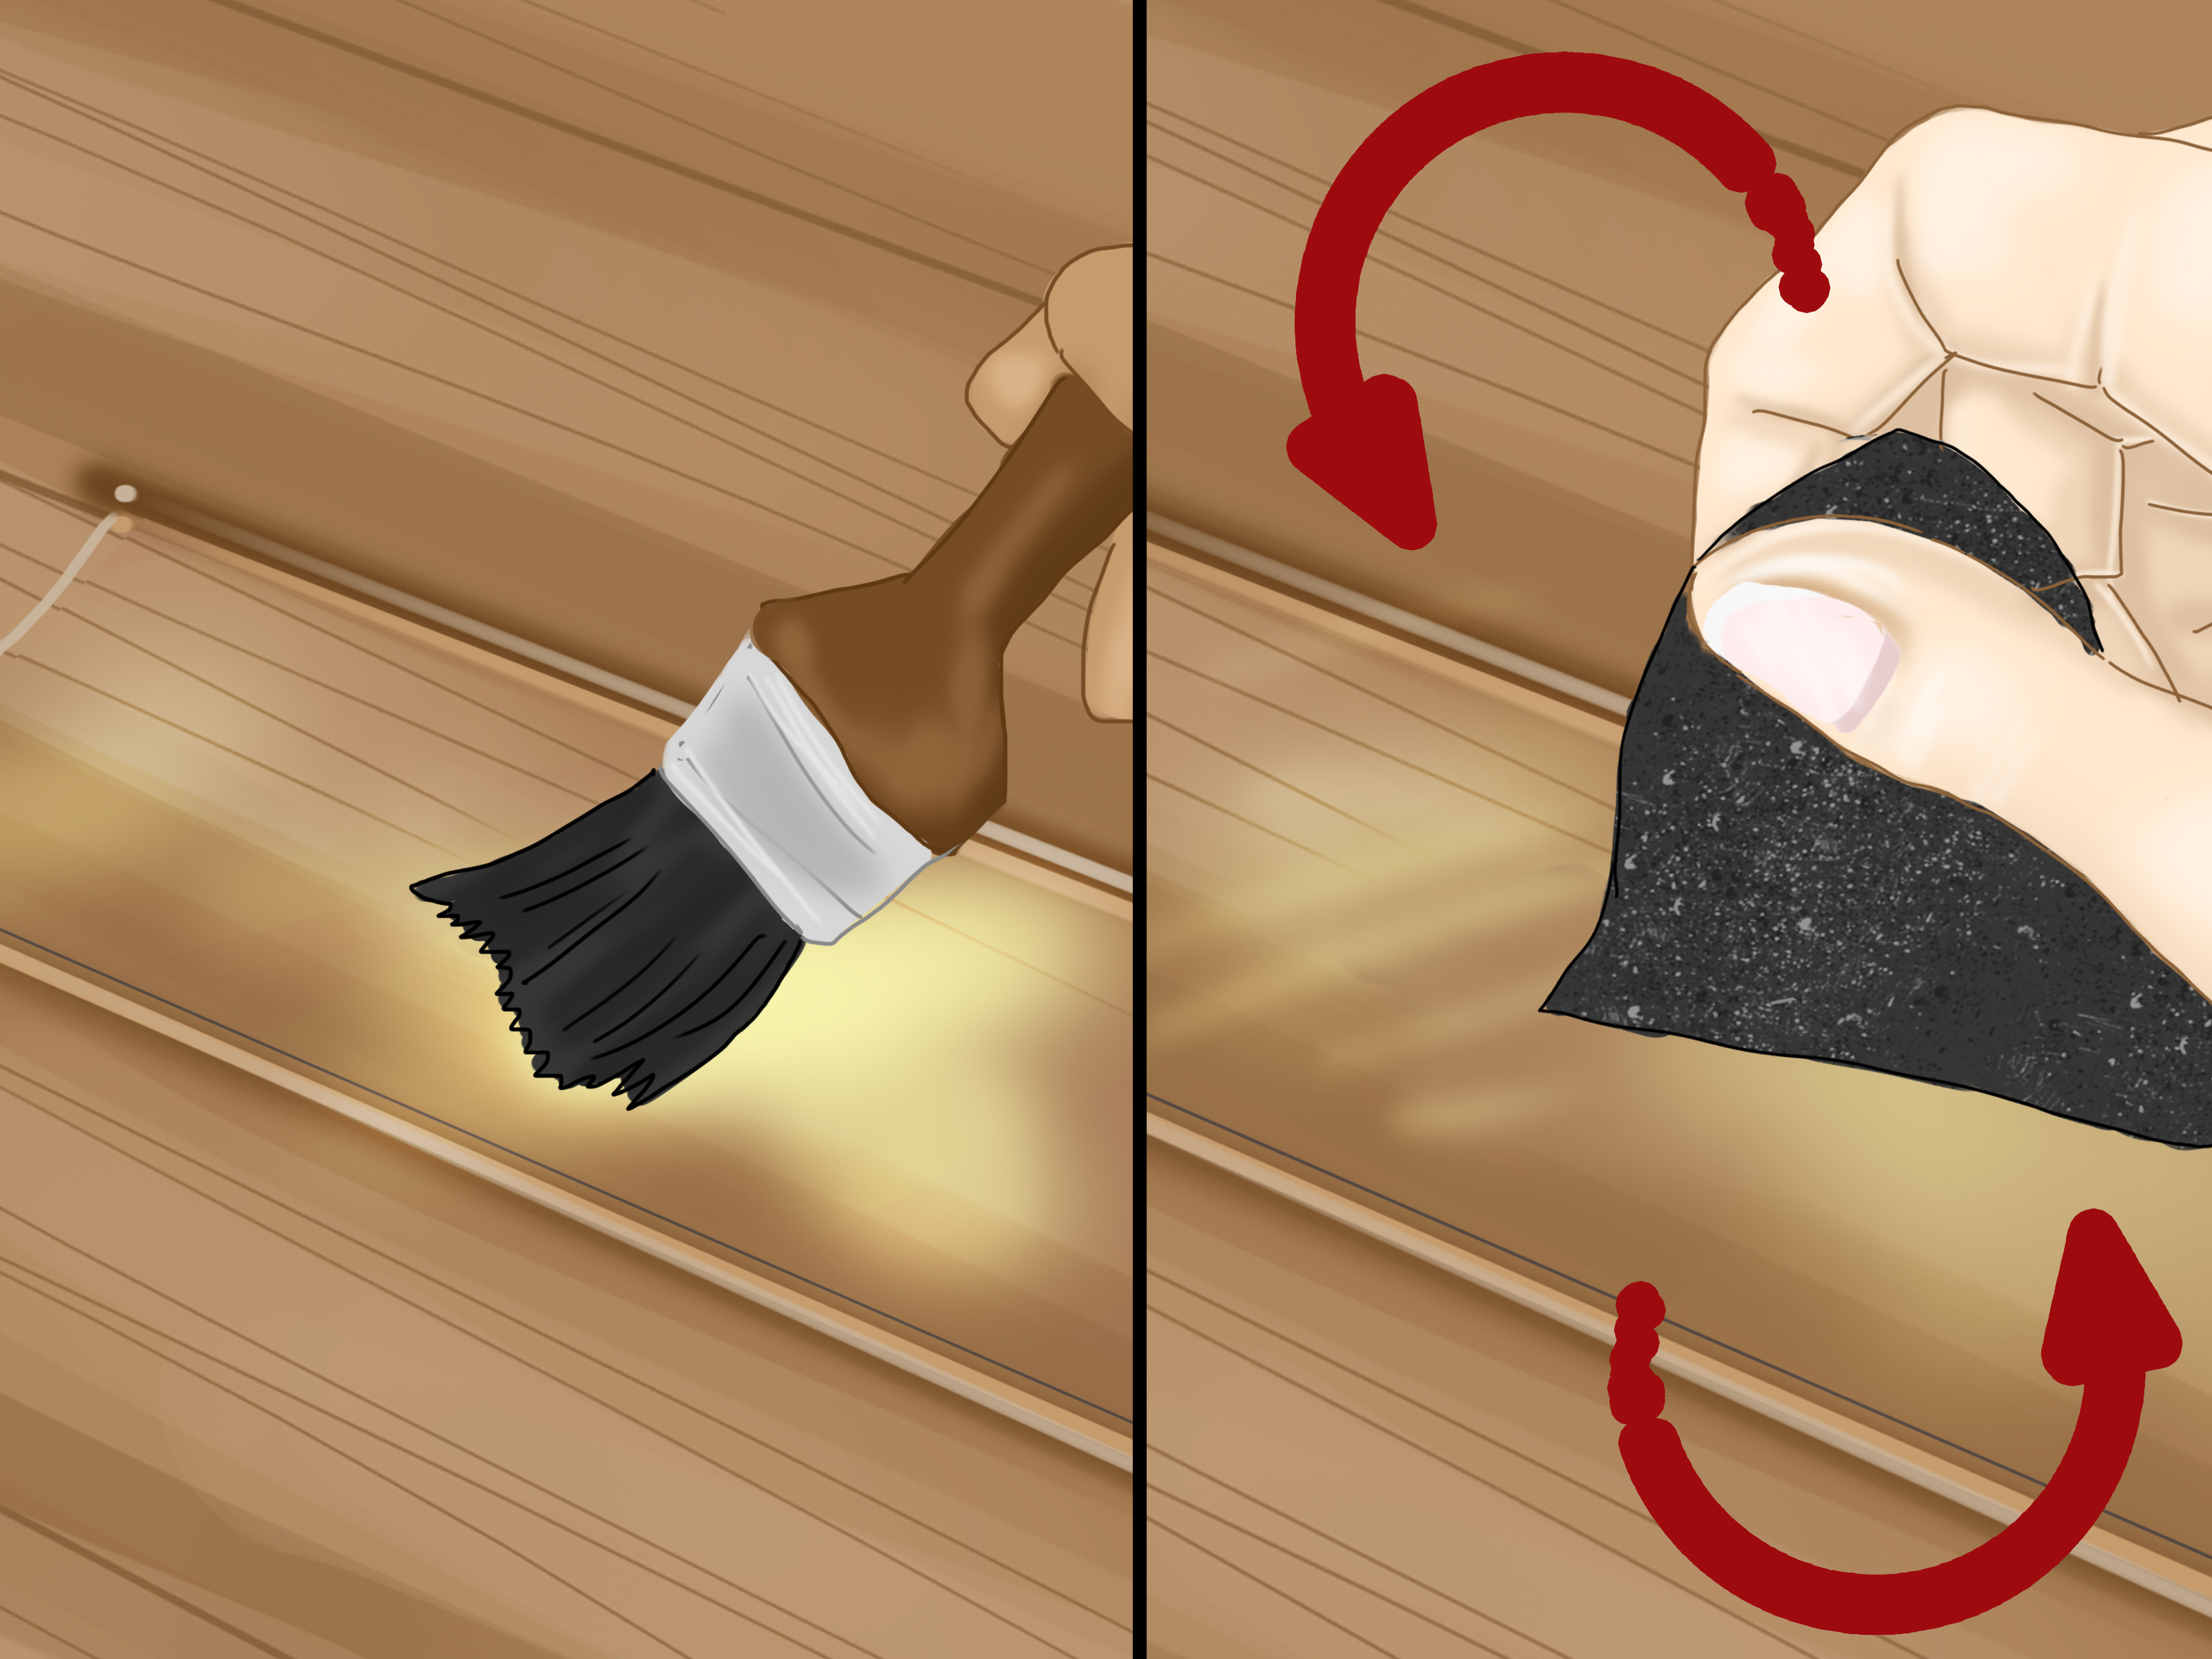 wood filler for hardwood floors of 5 easy ways to get permanent marker stain out of hardwood flooring with regard to get permanent marker stain out of hardwood flooring step 36